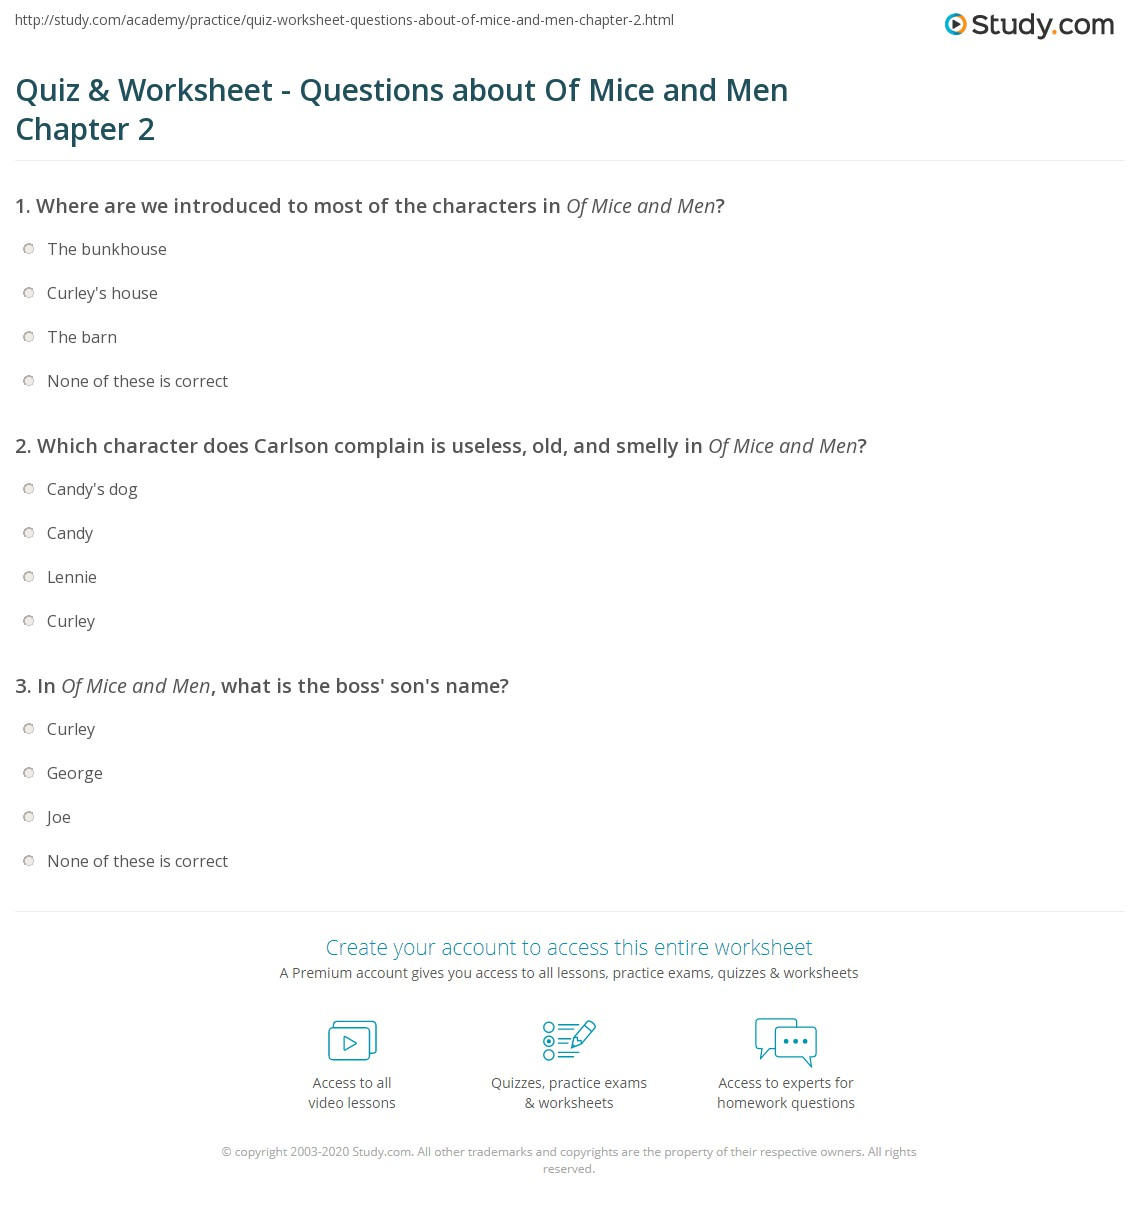 essay questions on of mice and men essay pte essay questions essay  quiz worksheet questions about of mice and men chapter print of mice and men chapter 2